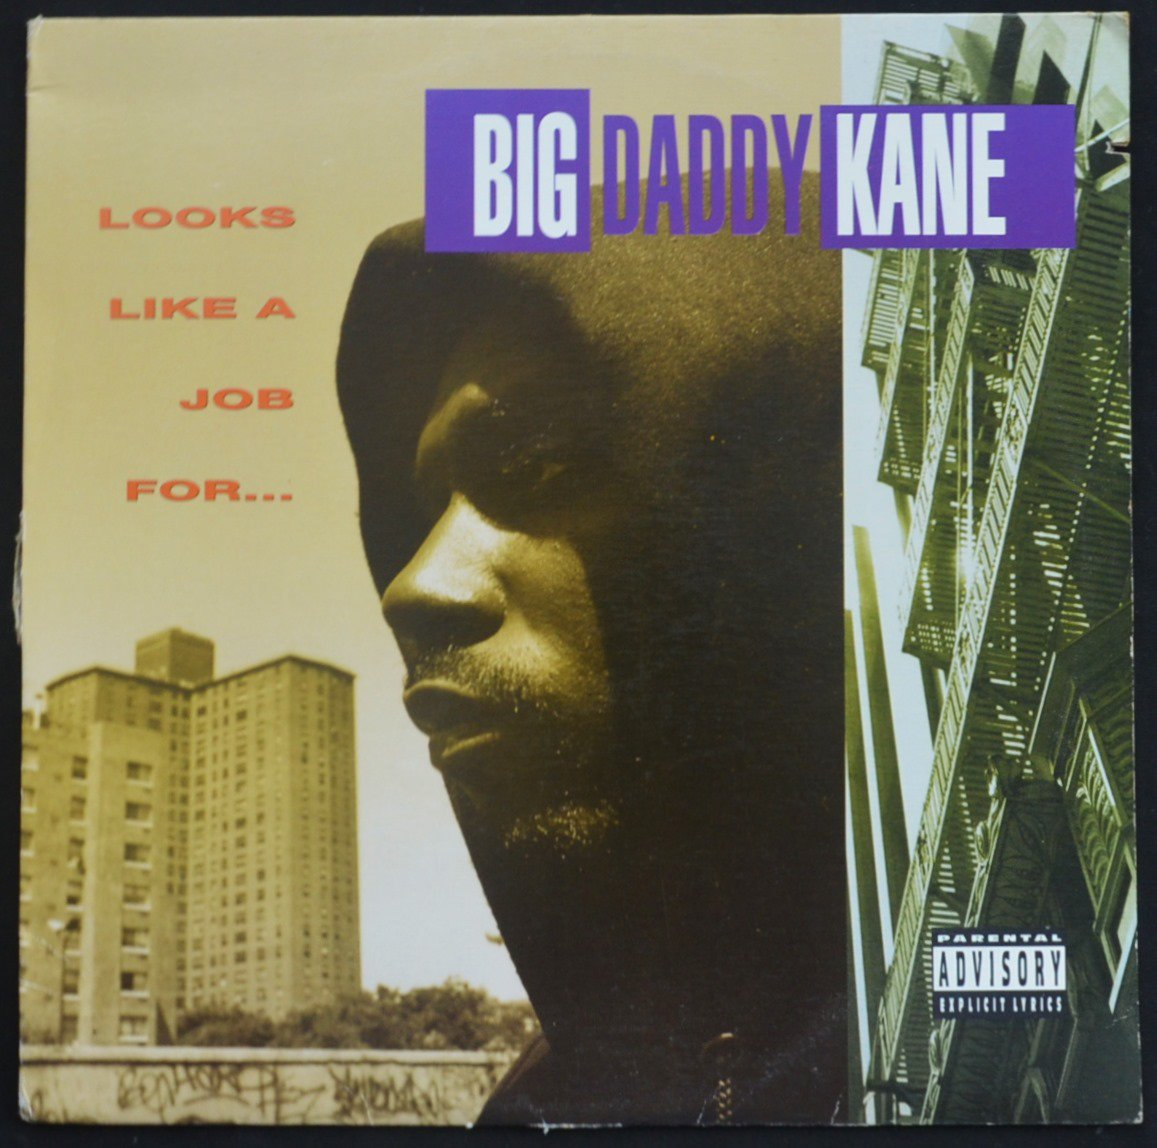 BIG DADDY KANE / LOOKS LIKE A JOB FOR... (1LP)